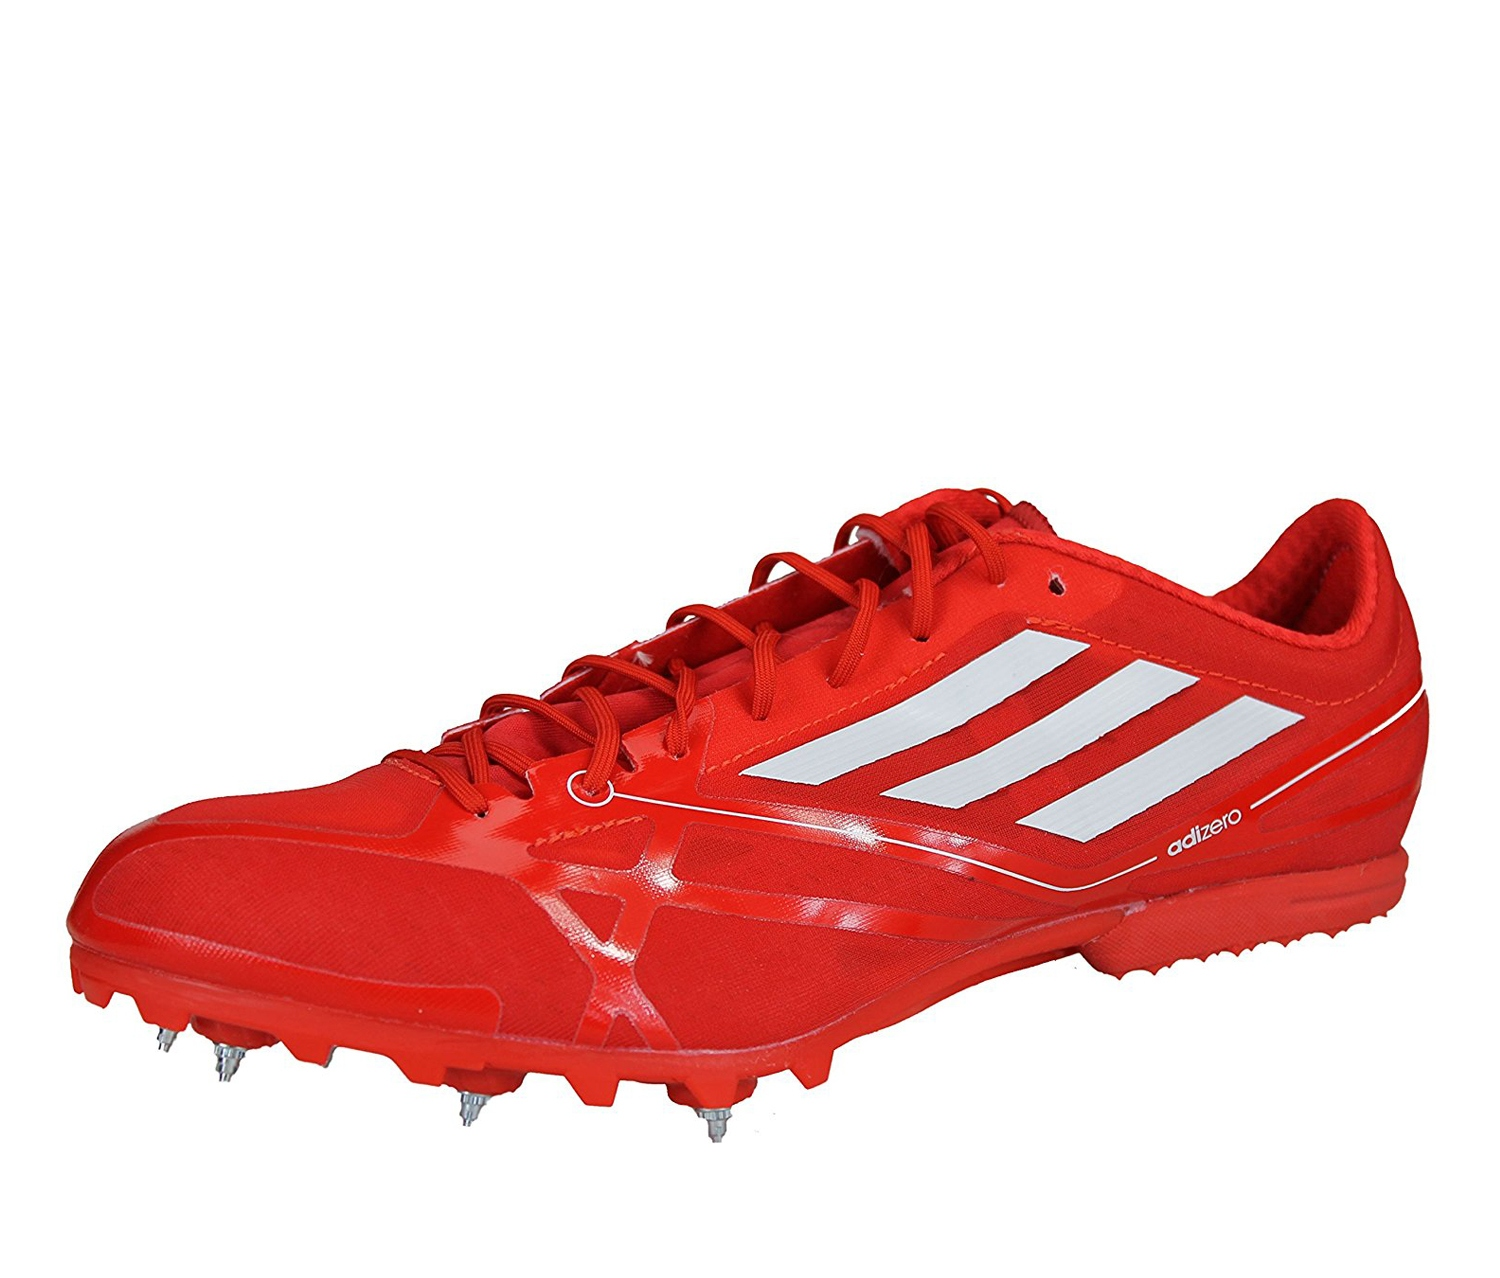 Shop Adidas Spikes Adizero MD 2 Sport Shoes for Clothing in